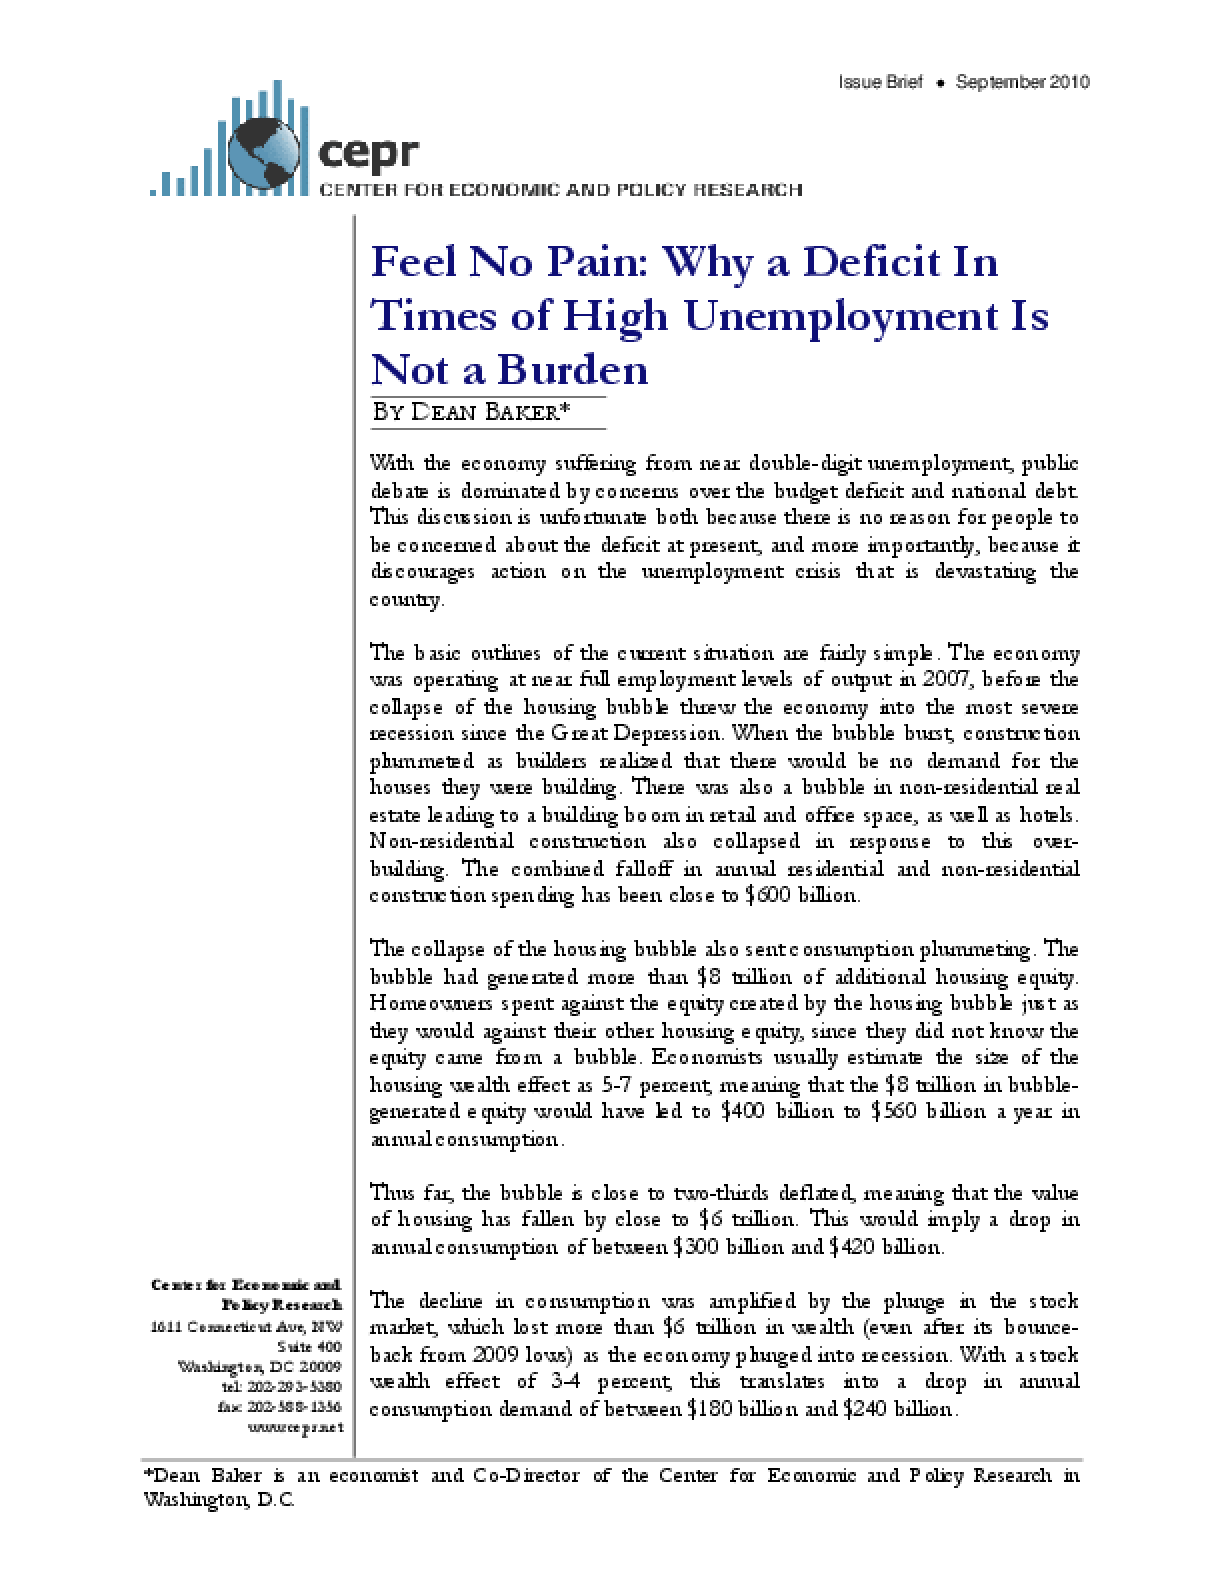 Feel No Pain: Why a Deficit in Times of High Unemployment is Not a Burden